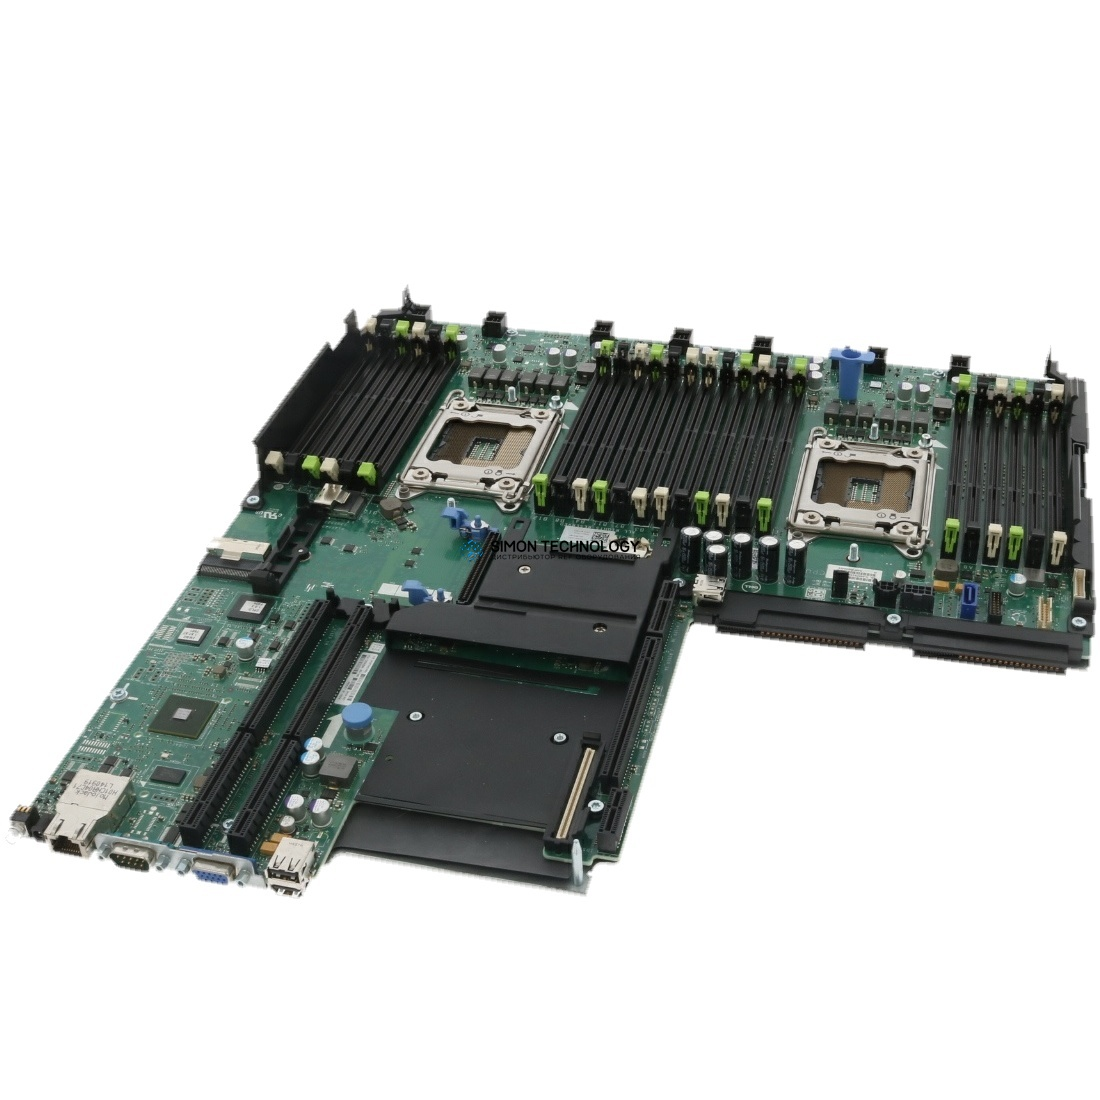 Материнская плата Dell PowerEdge R620 8 Bay VV3F2 Ask for custom qoute (PER620-SFF-8-VV3F2)